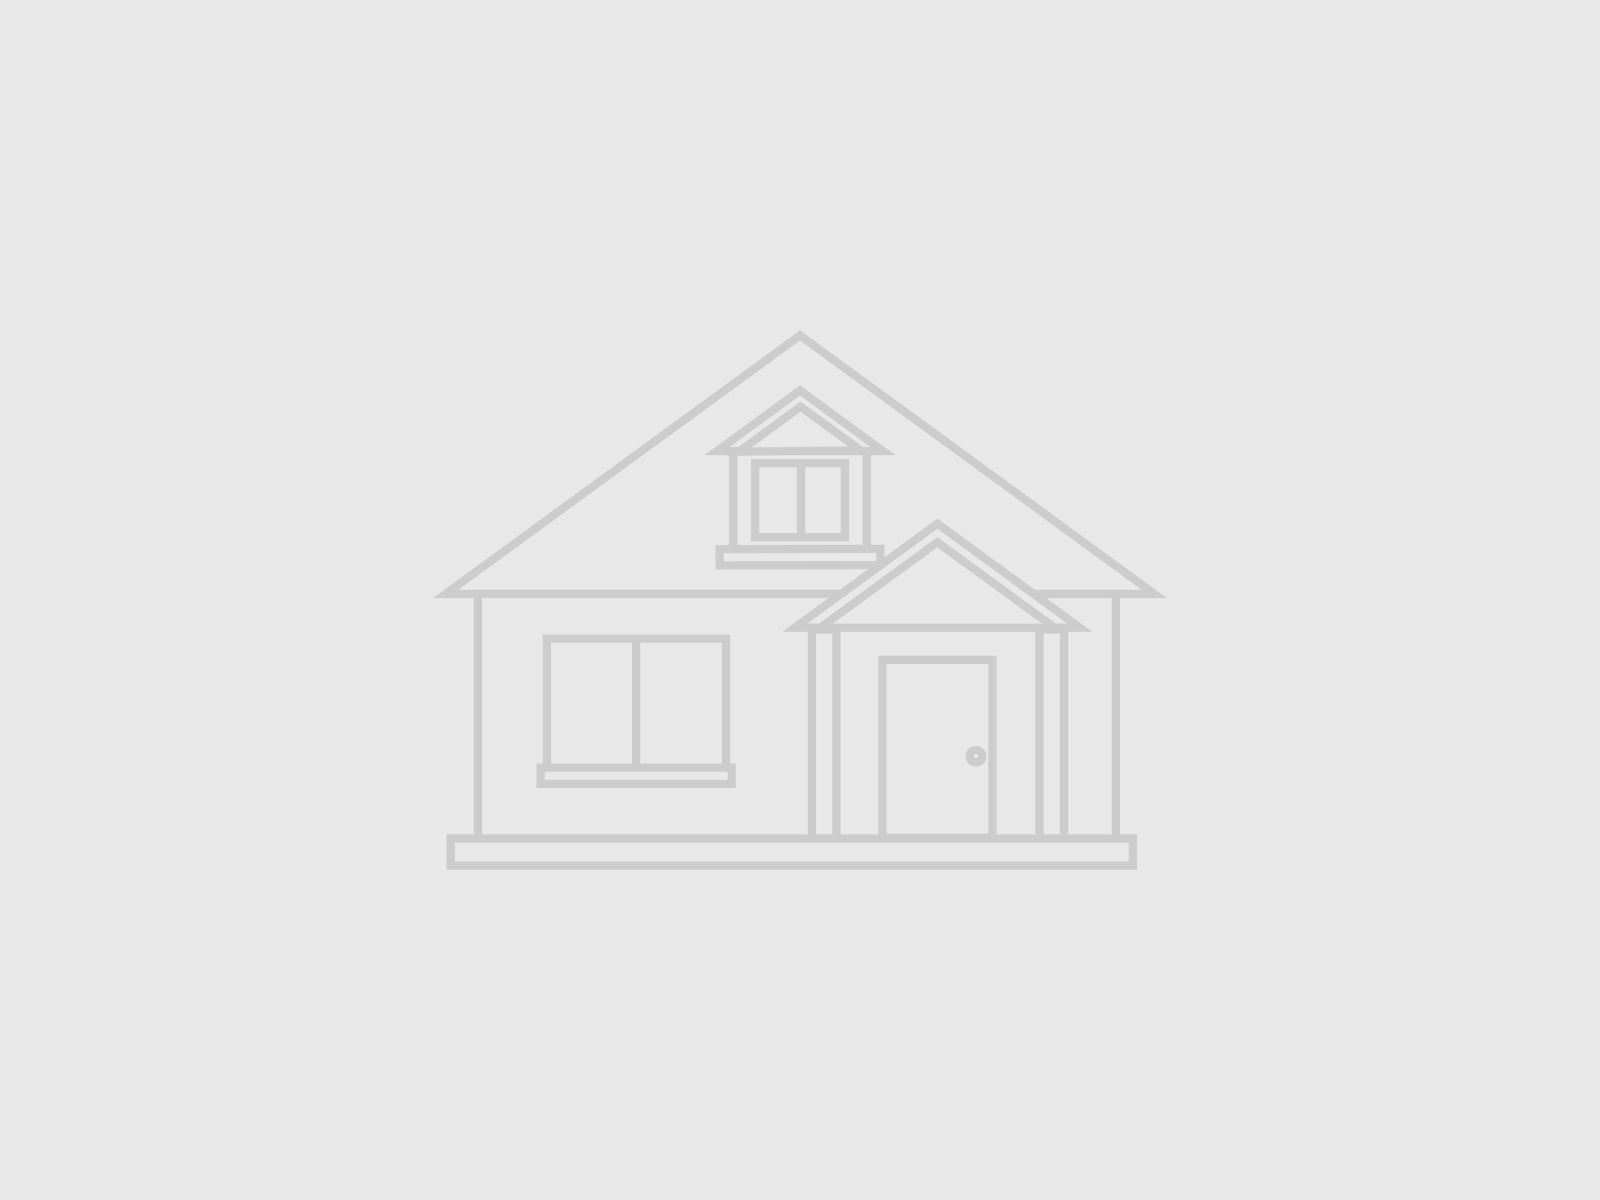 Single Family Homes for Sale at 2845 Fox Run Ridge Arnold, Missouri 63010 United States